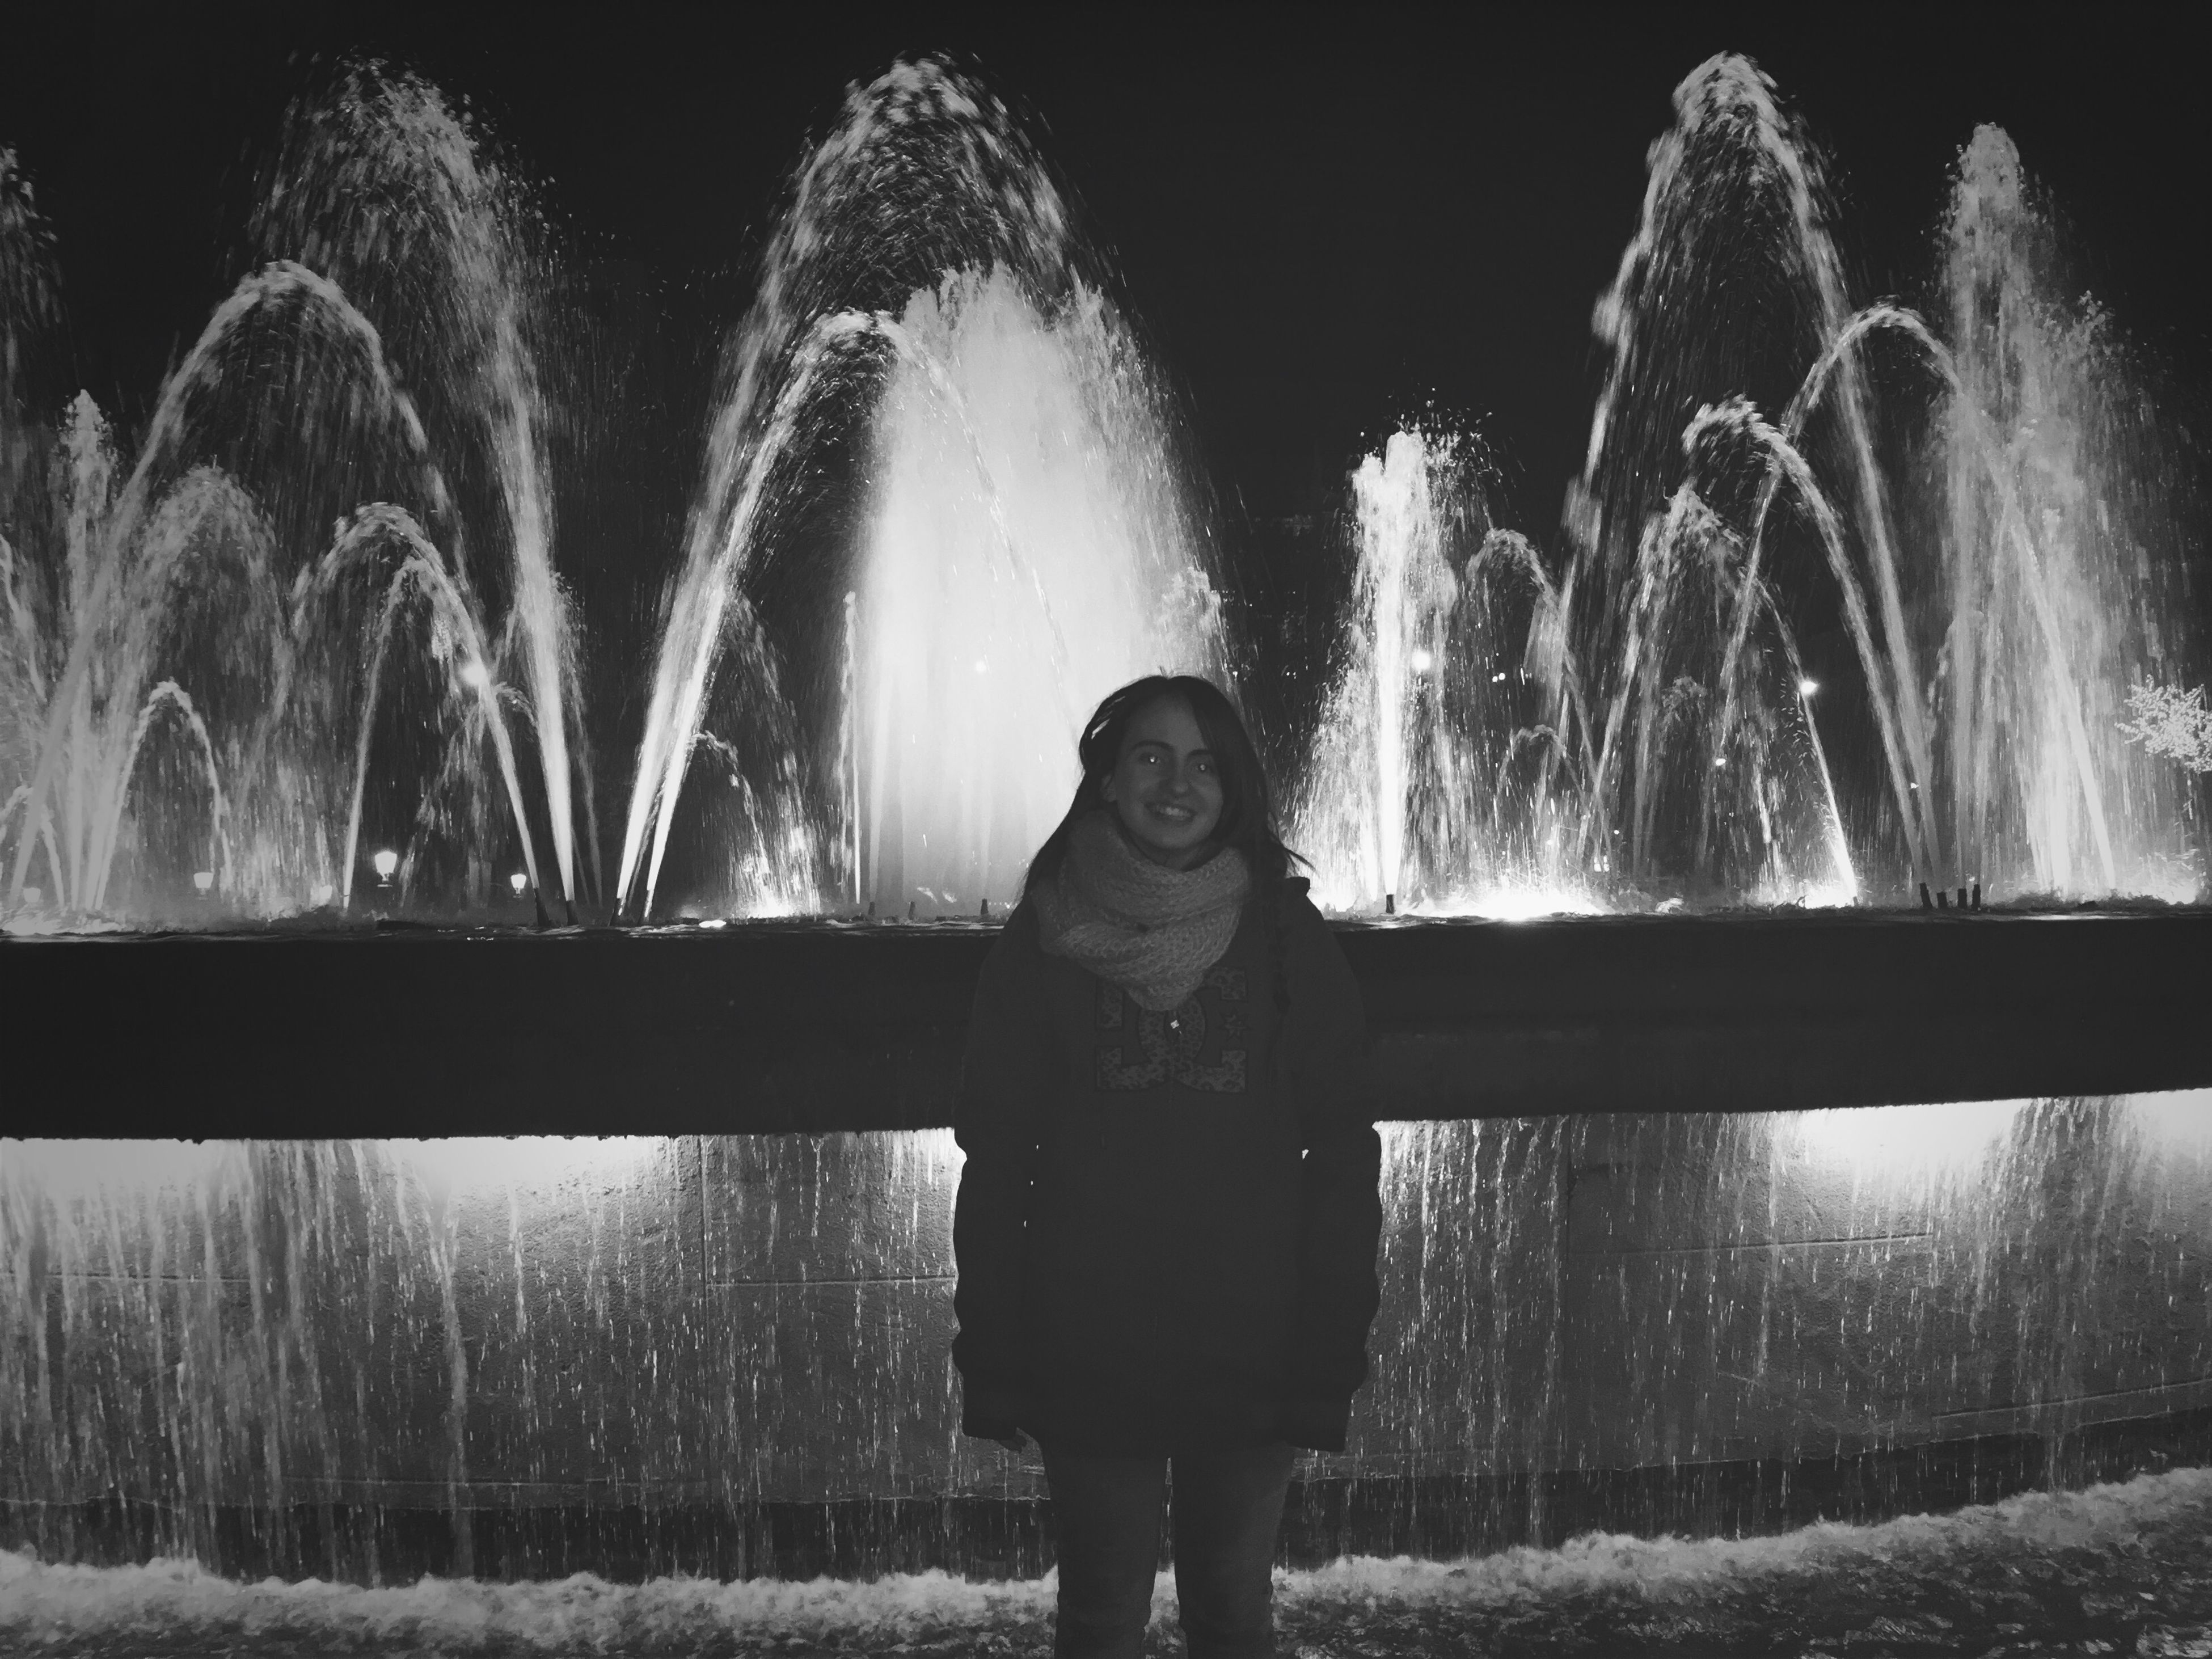 lifestyles, standing, leisure activity, fountain, water, clear sky, spraying, motion, three quarter length, night, young adult, front view, long exposure, casual clothing, tree, splashing, portrait, young women